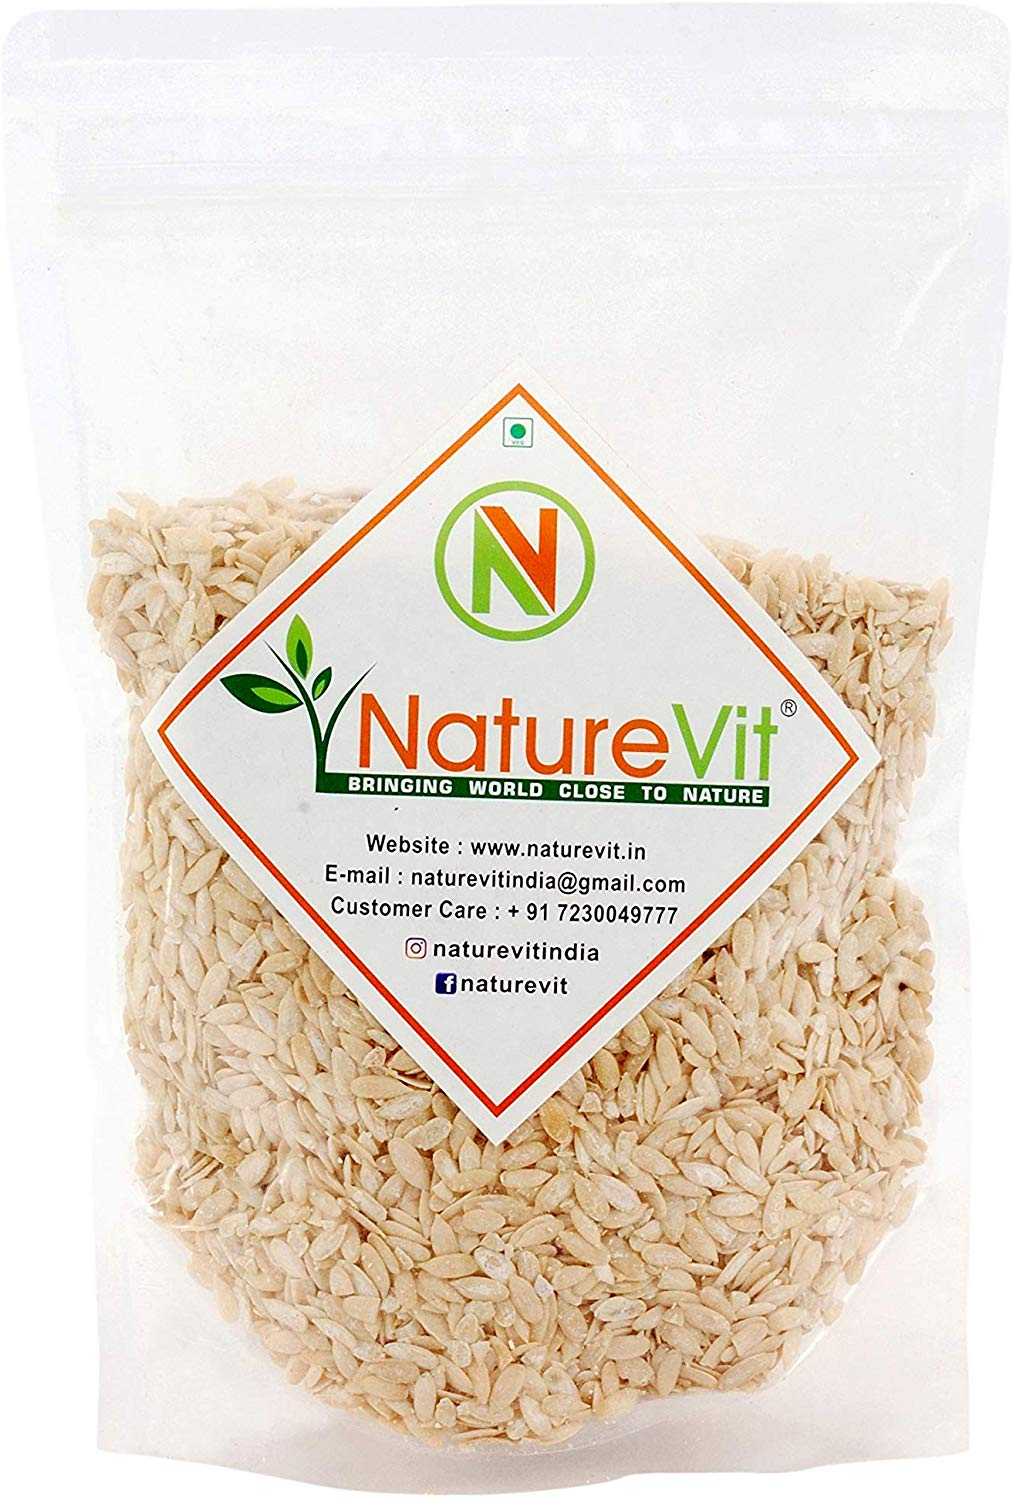 NatureVit Muskmelon Seeds for Eating [Kharbooj Magaj] - Nature Vit